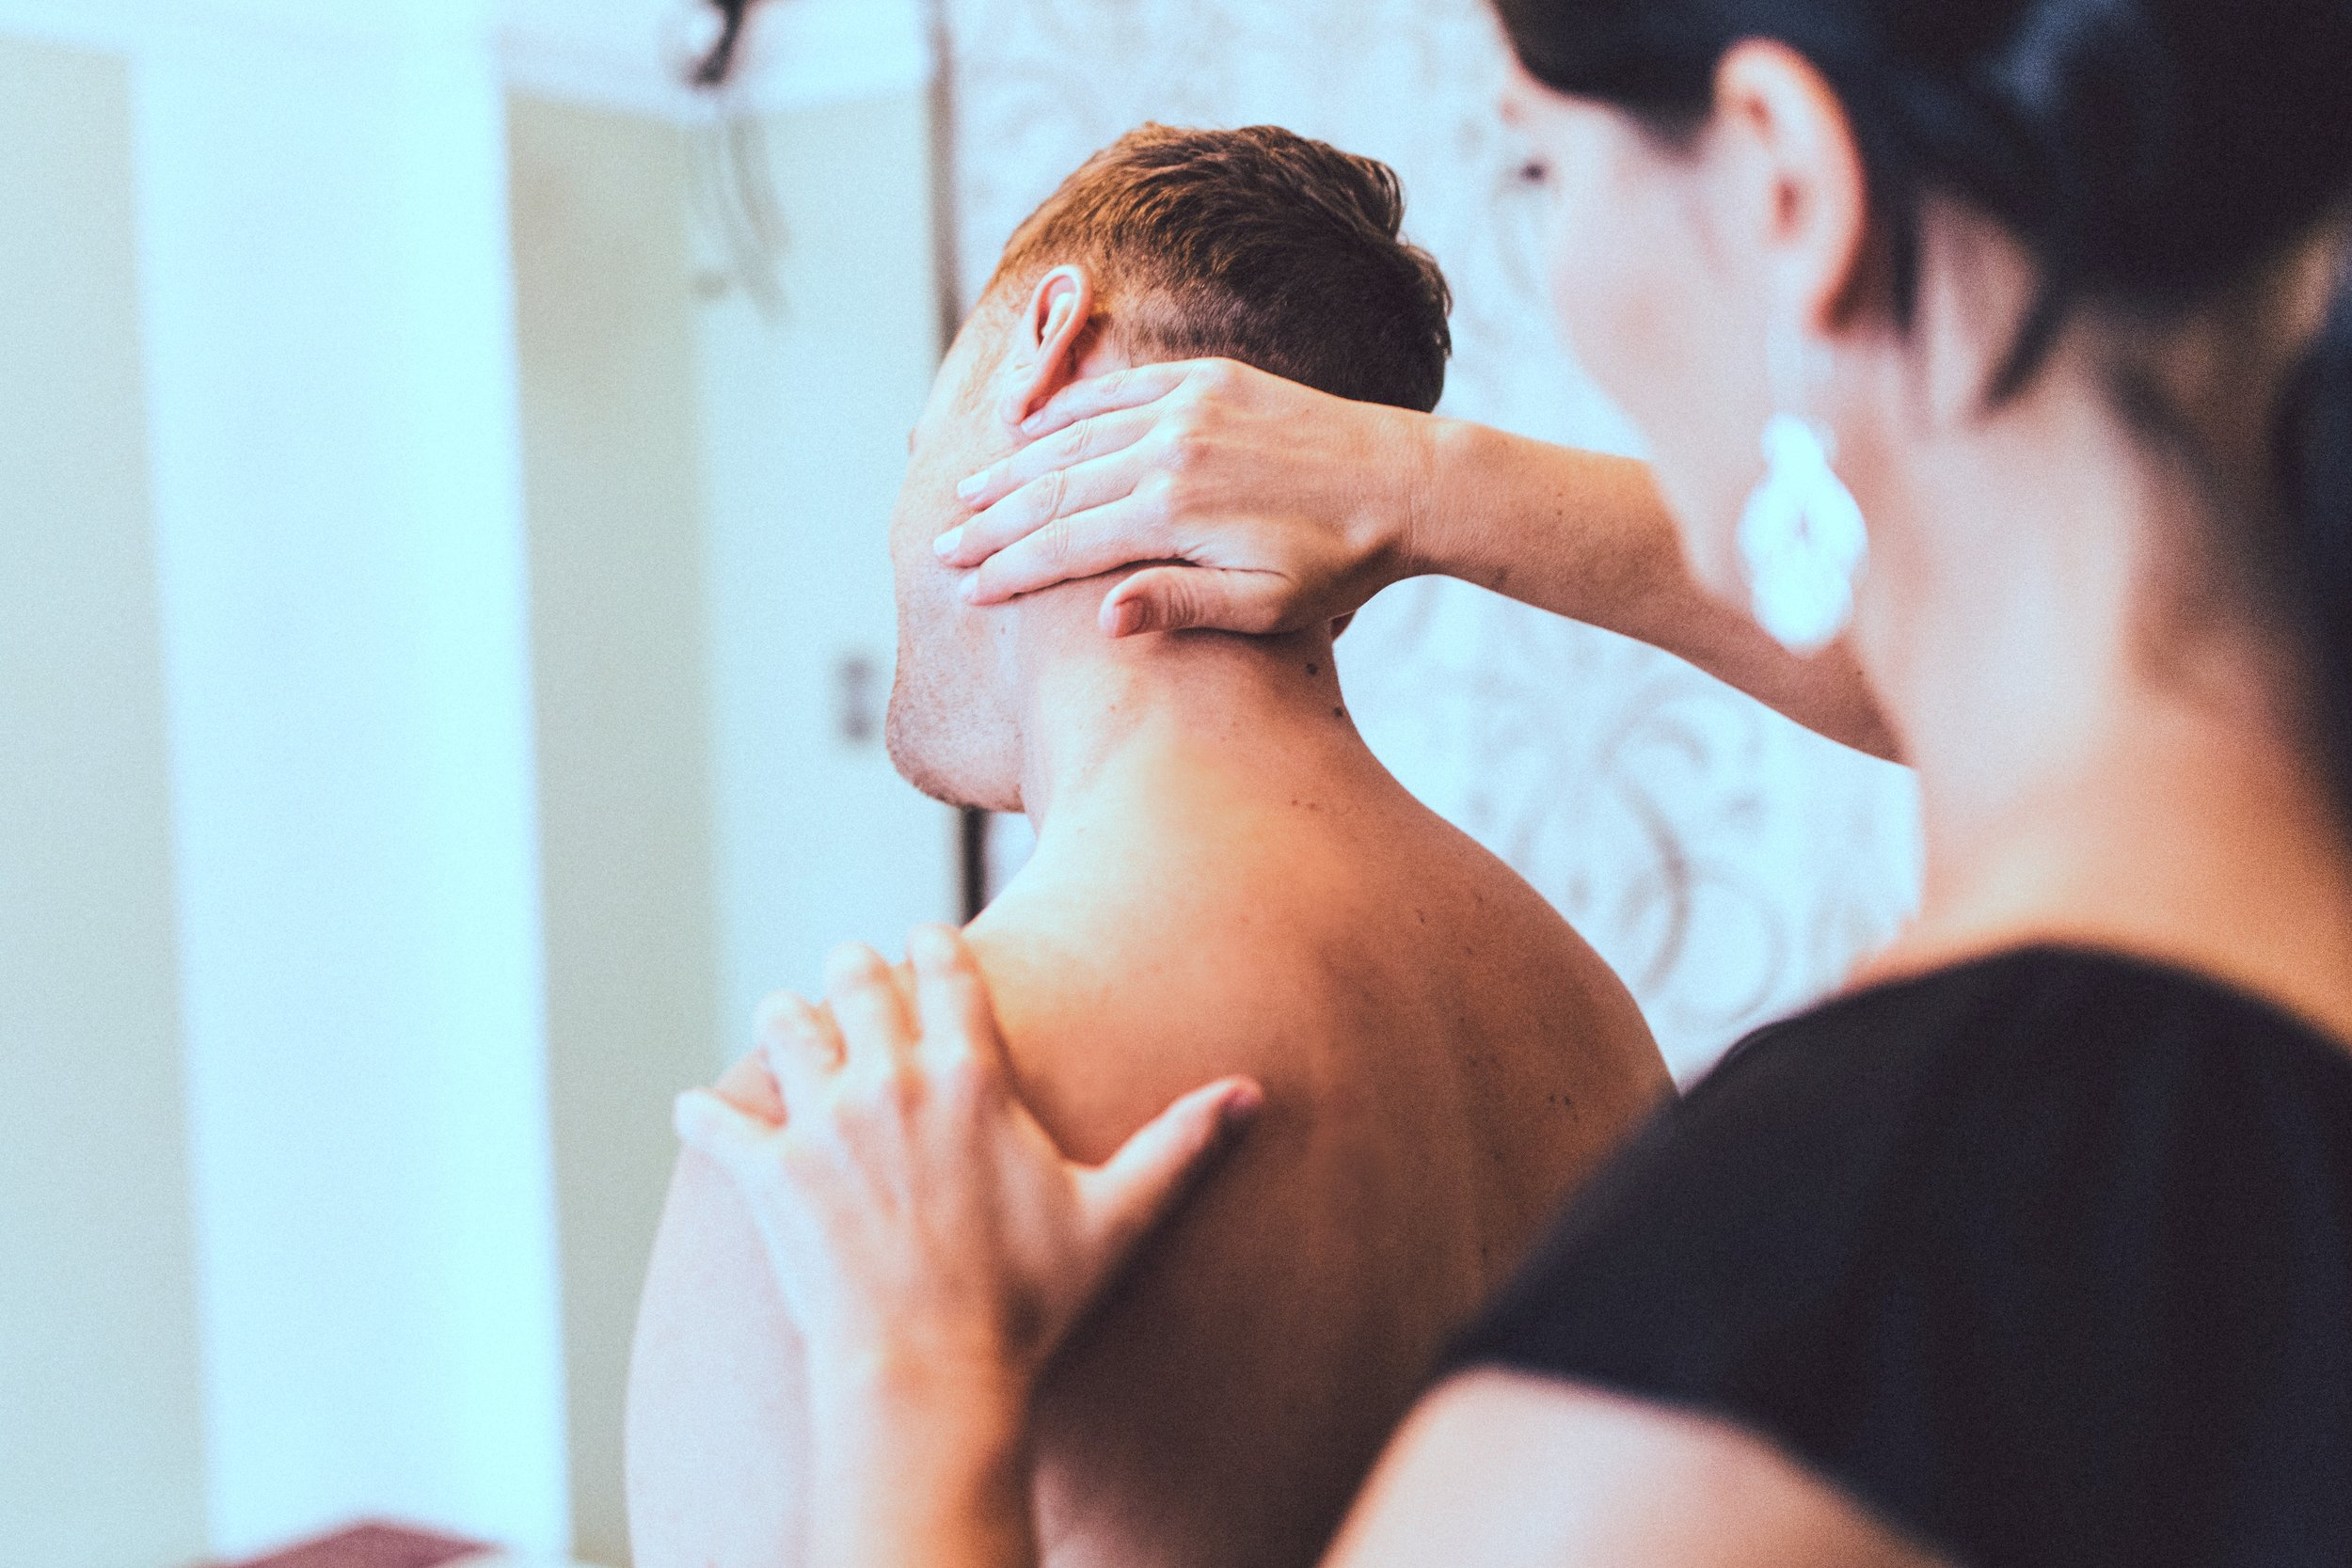 neck pain analysis from a chiropractor